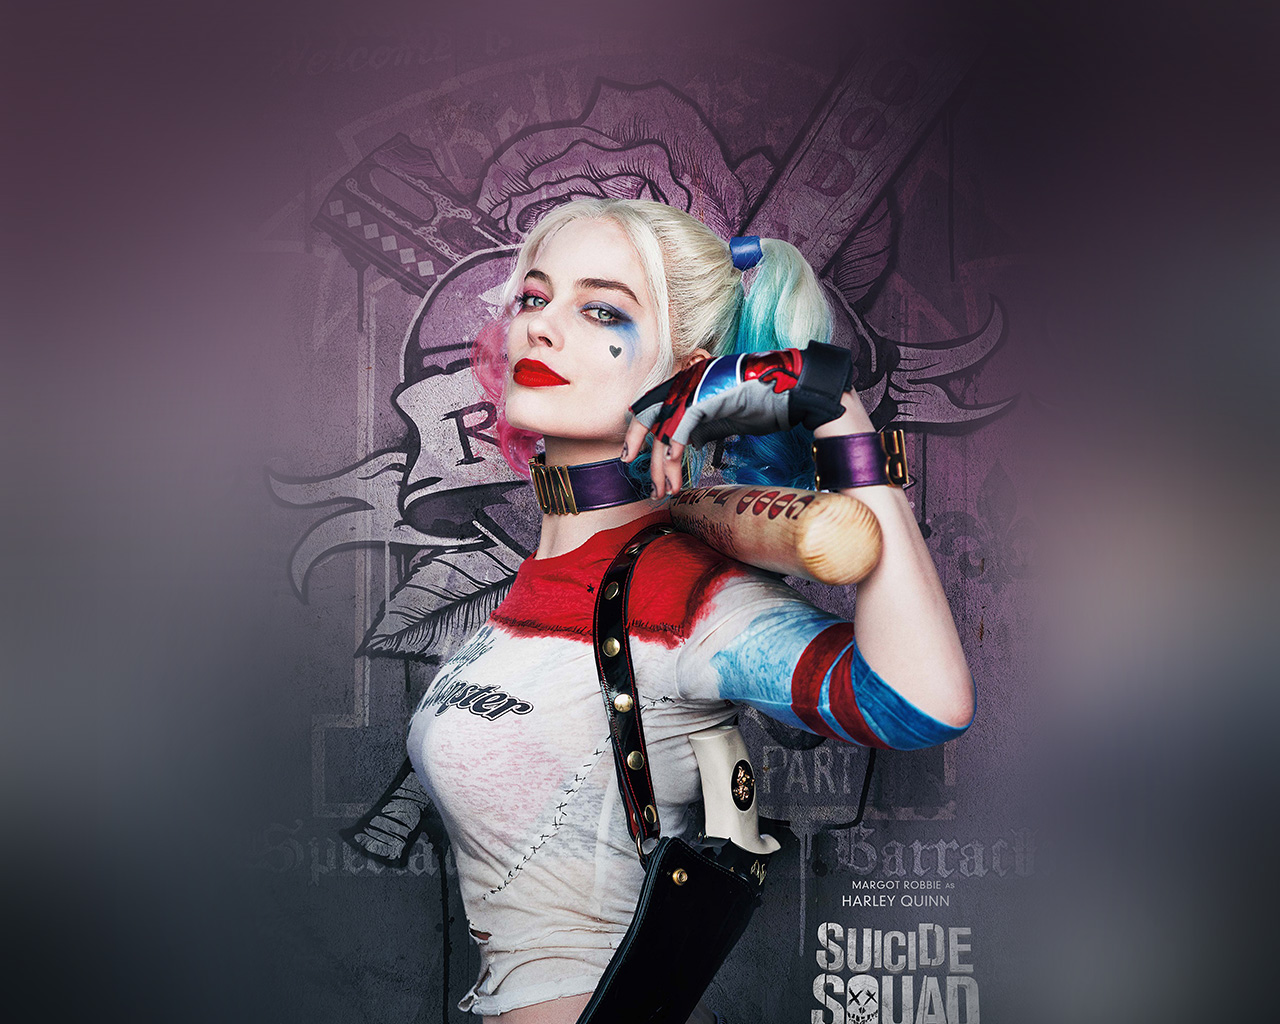 Harley Quinn Wallpaper Suicide Squad: As34-suicide-squad-poster-film-art-hall-harley-quinn-wallpaper